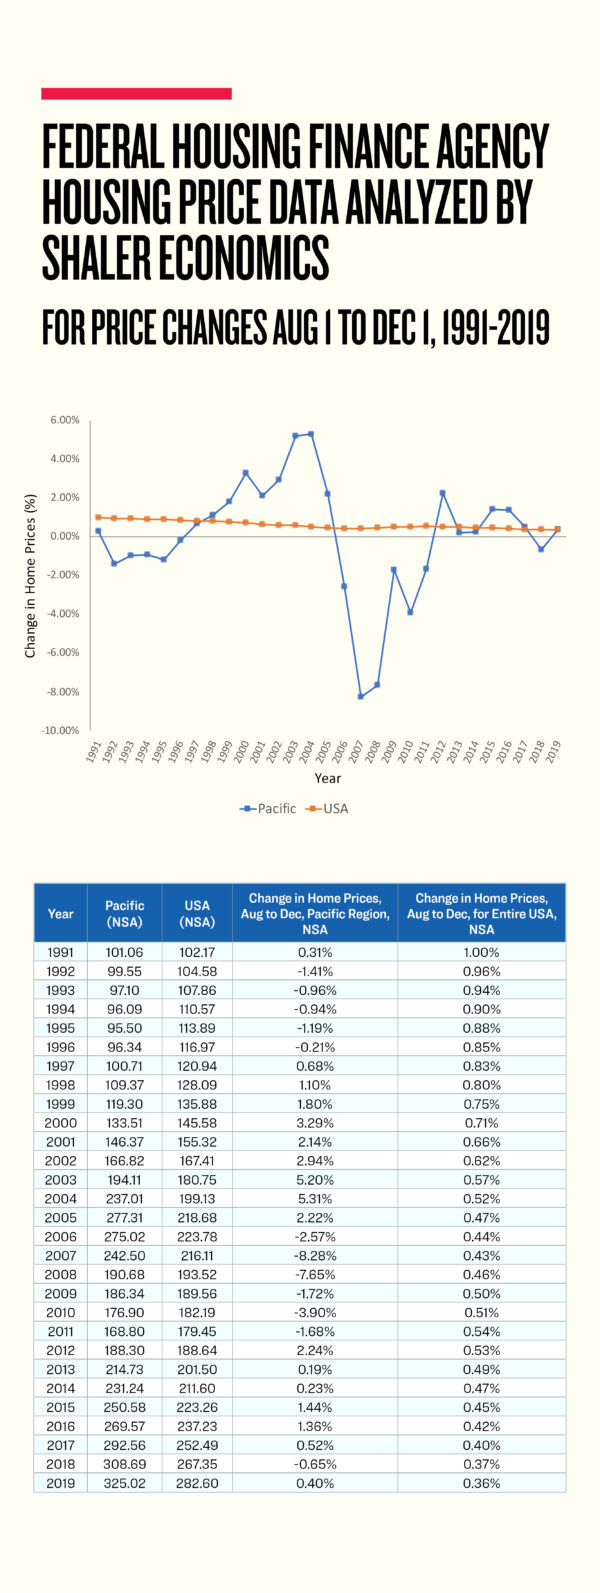 Price change data for housing in the Pacific region versus all of the United States, from Federal Housing Finance Agency housing price data, analyzed by Shaler Economics.